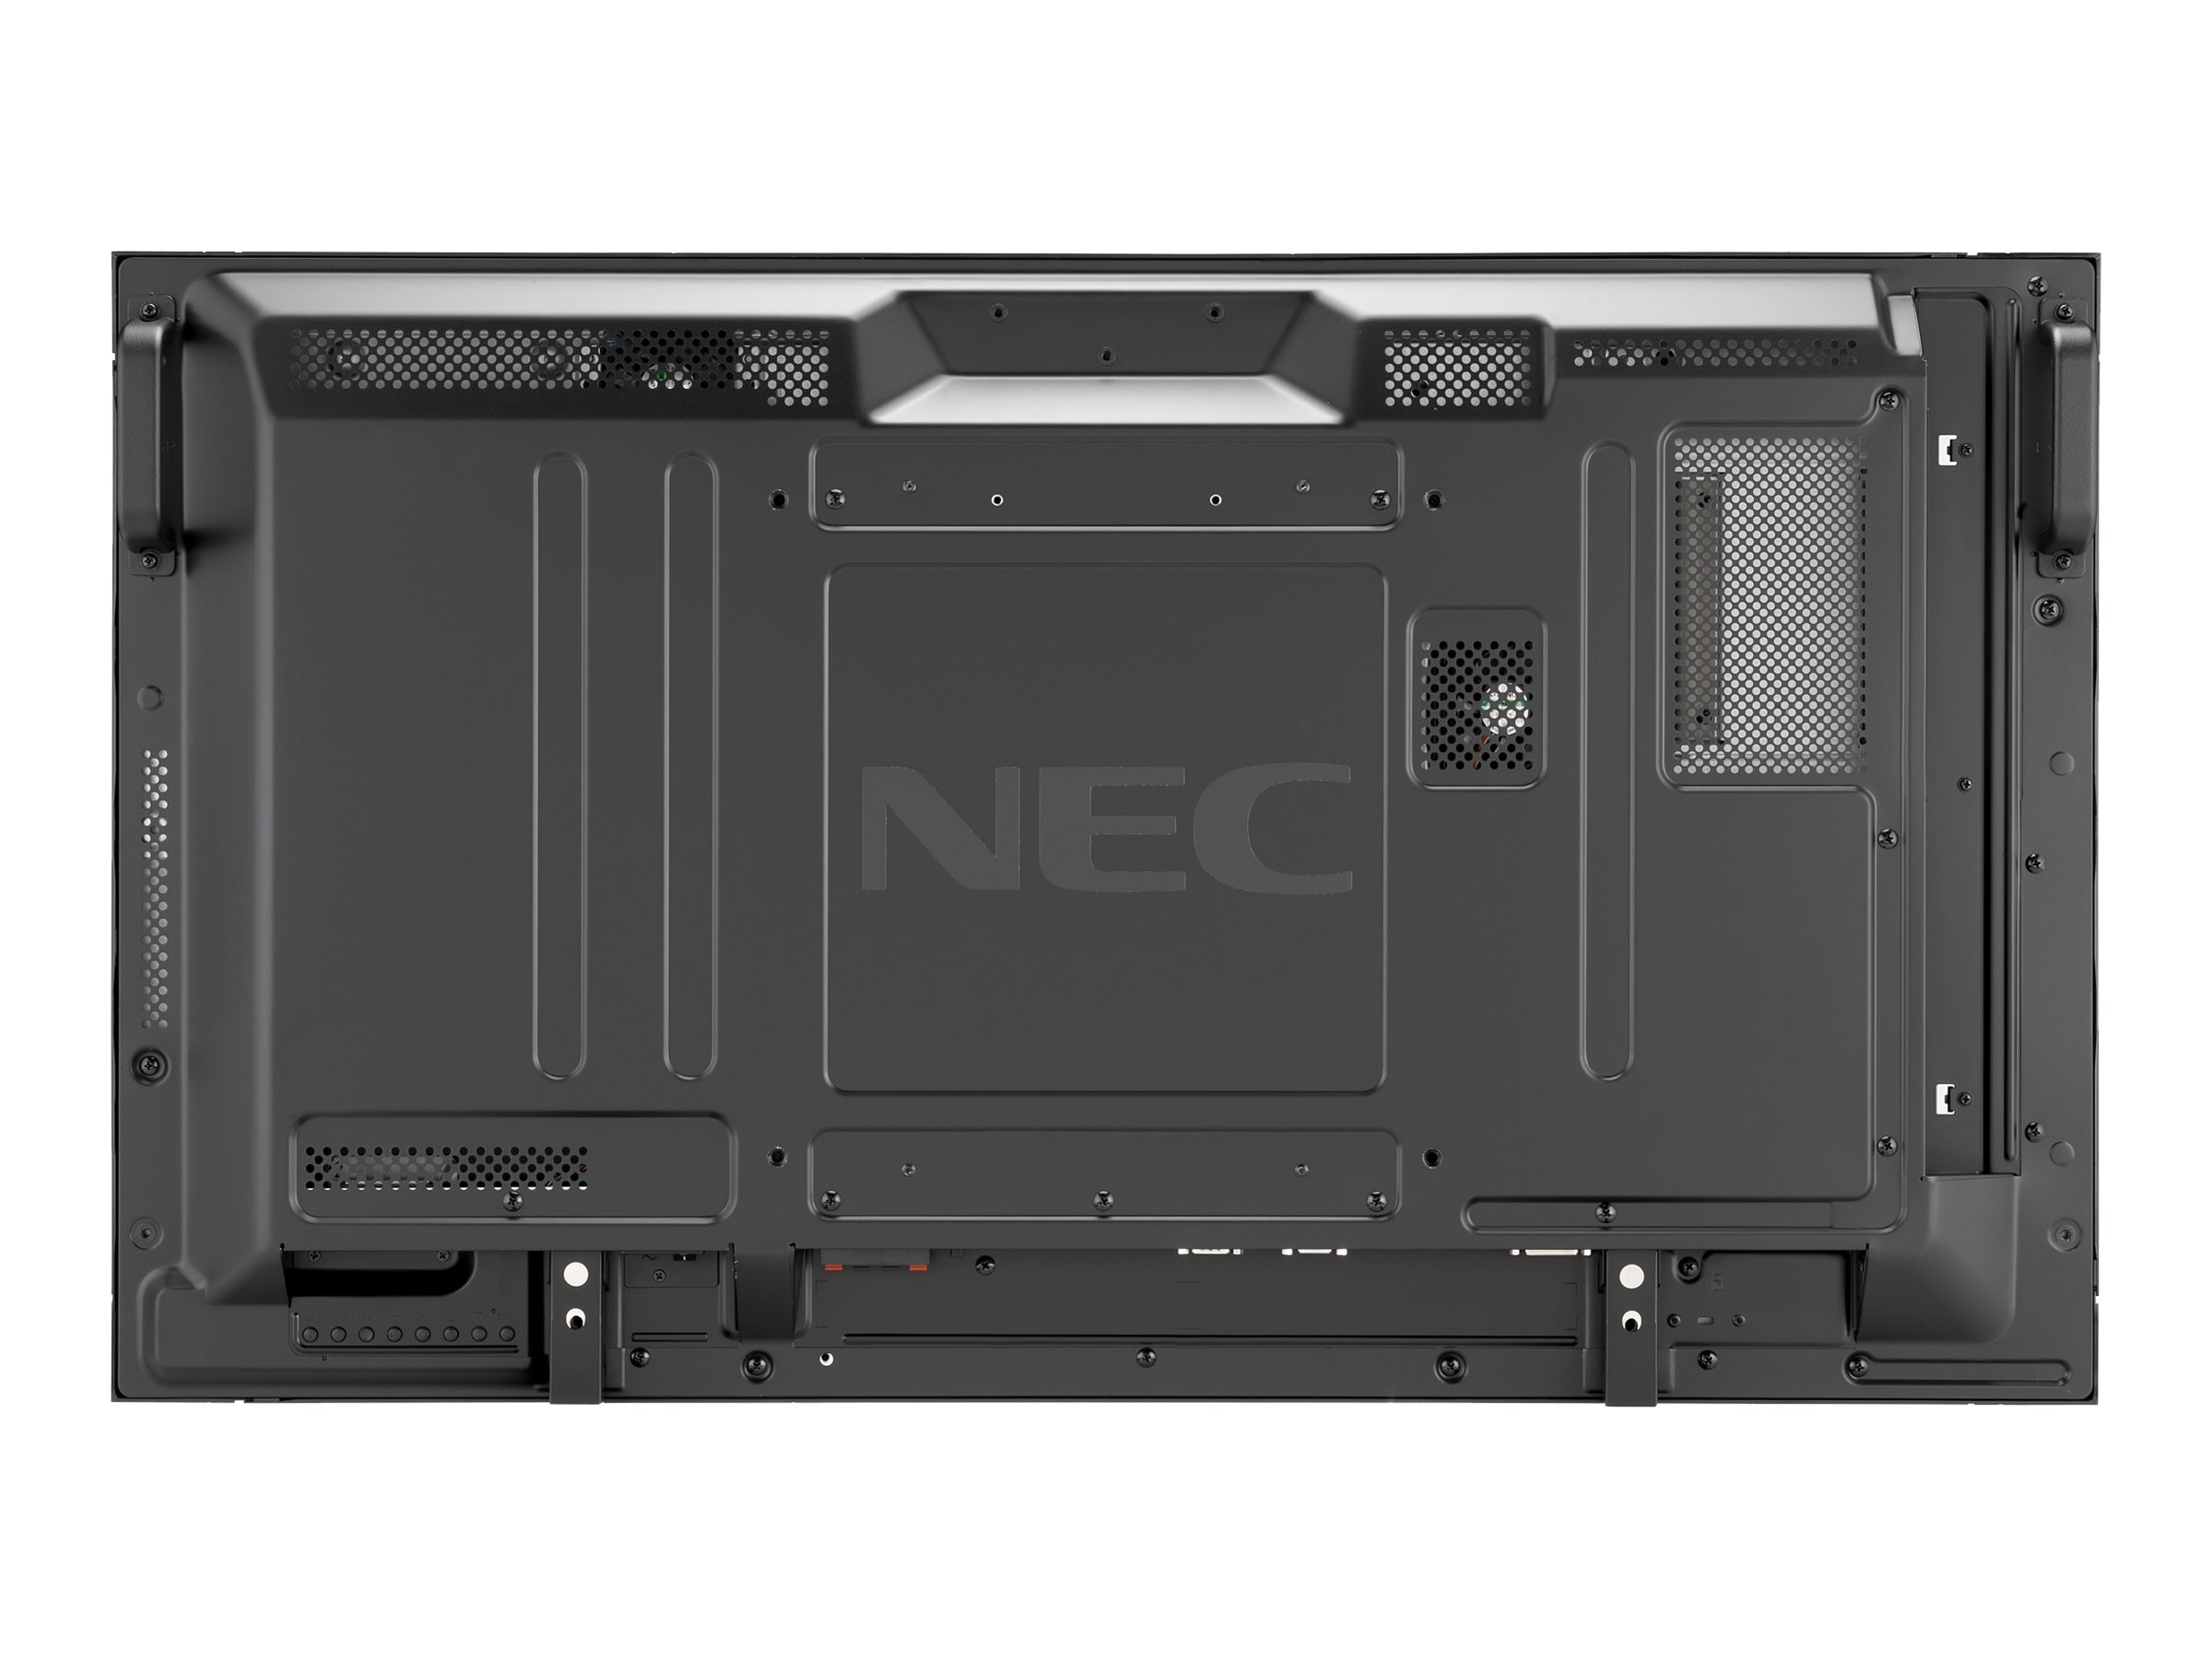 NEC 40 P405 Full HD LED-LCD Display with Integrated Computer, Black, P403-PC2